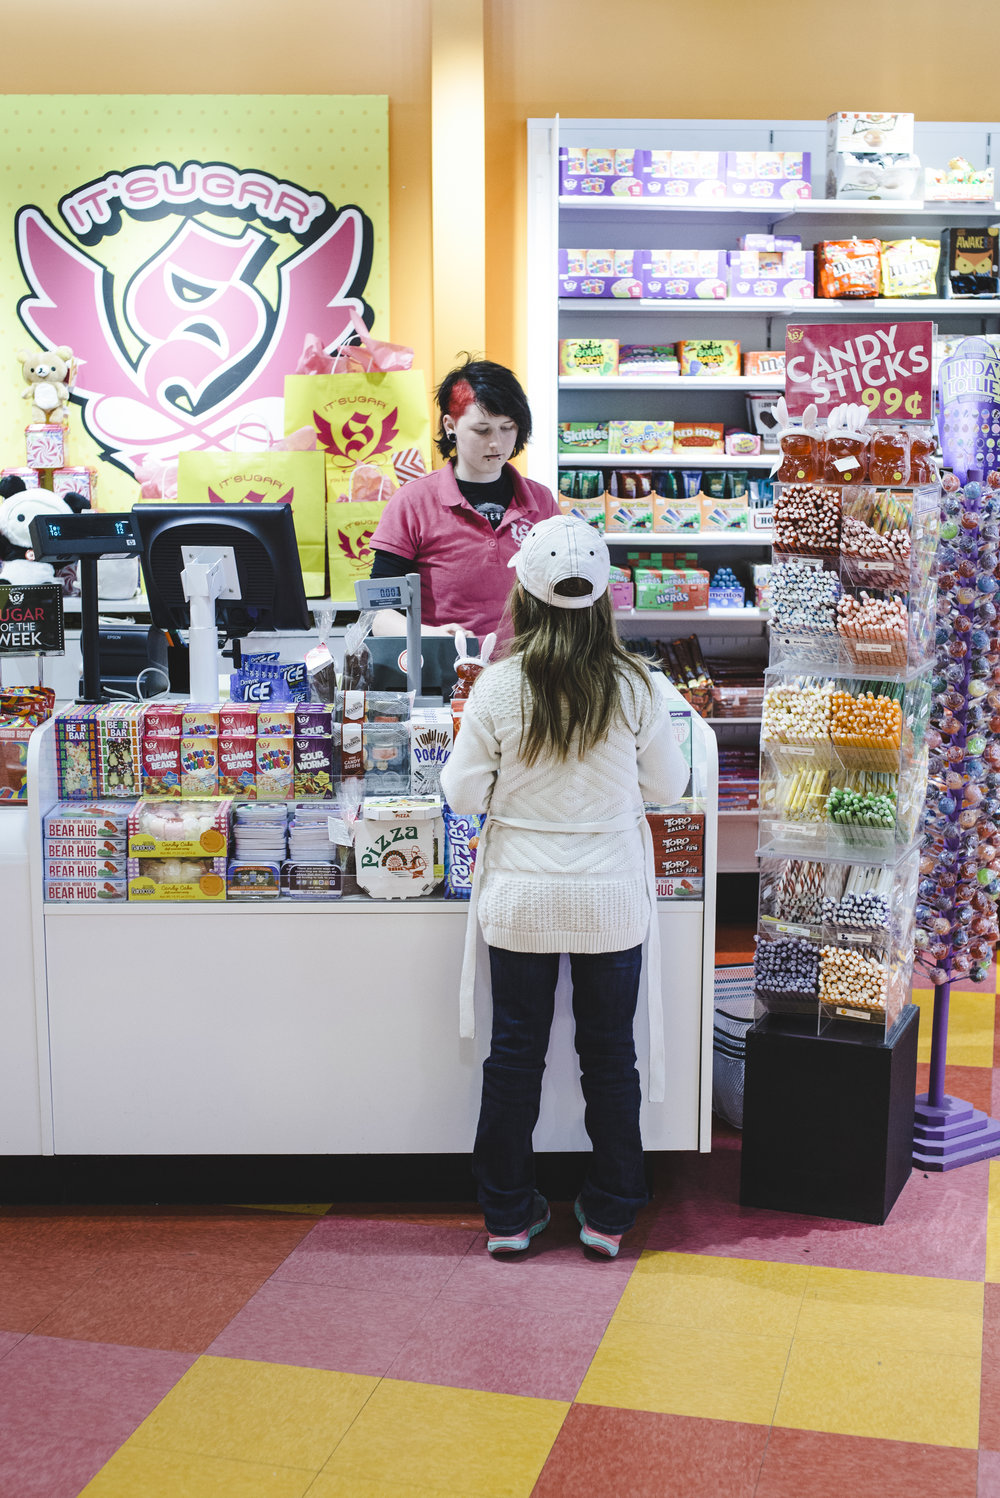 A girl buys candy at Denver's It's Sugar store on the 16th Street Mall in Colorado. Denver Family Photographer--Top 10 things to do in Denver